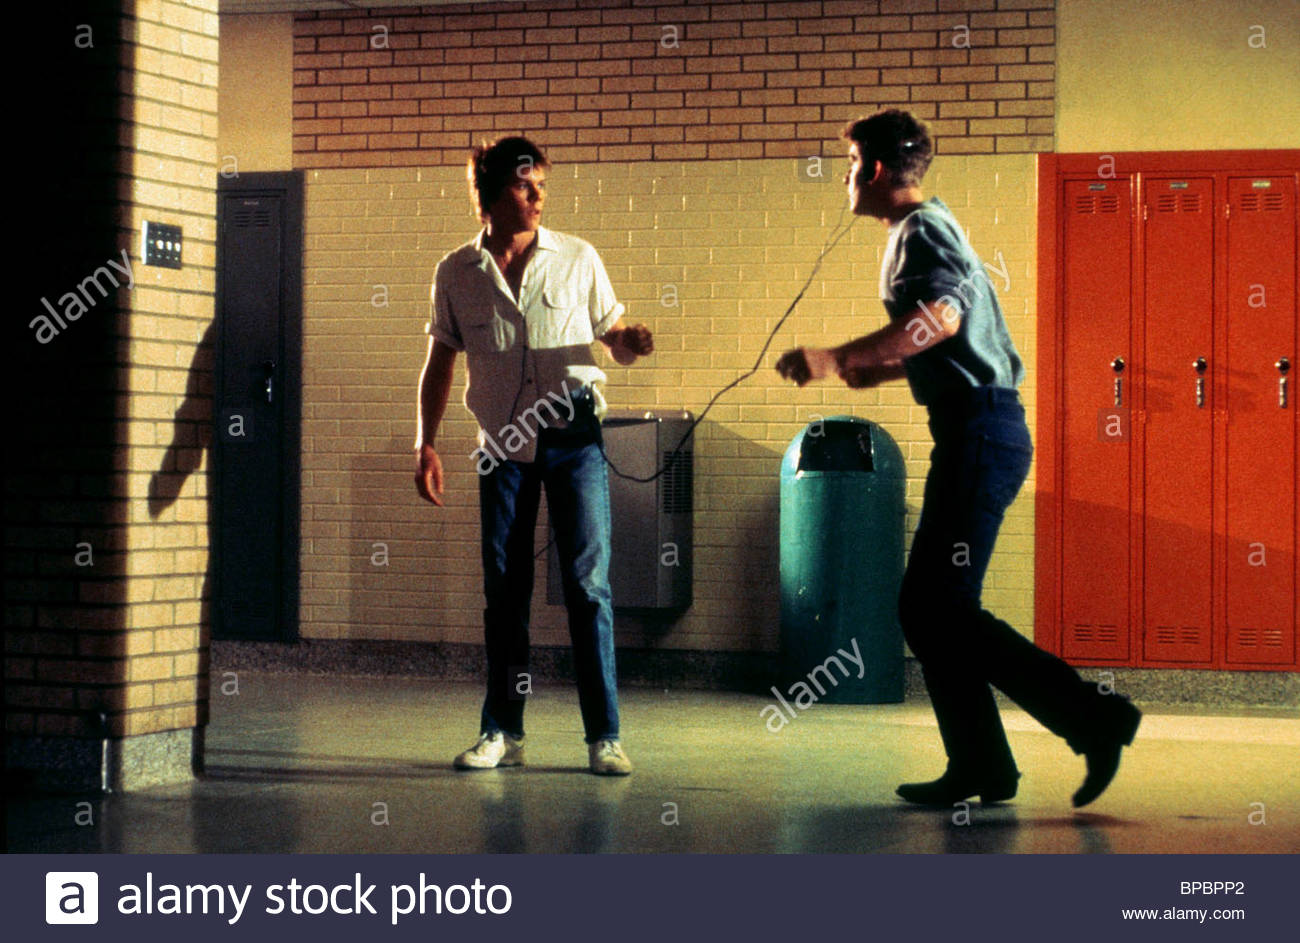 KEVIN BACON CHRIS PENN FOOTLOOSE 1984 Stock Photo 30992138   Alamy 1300x943